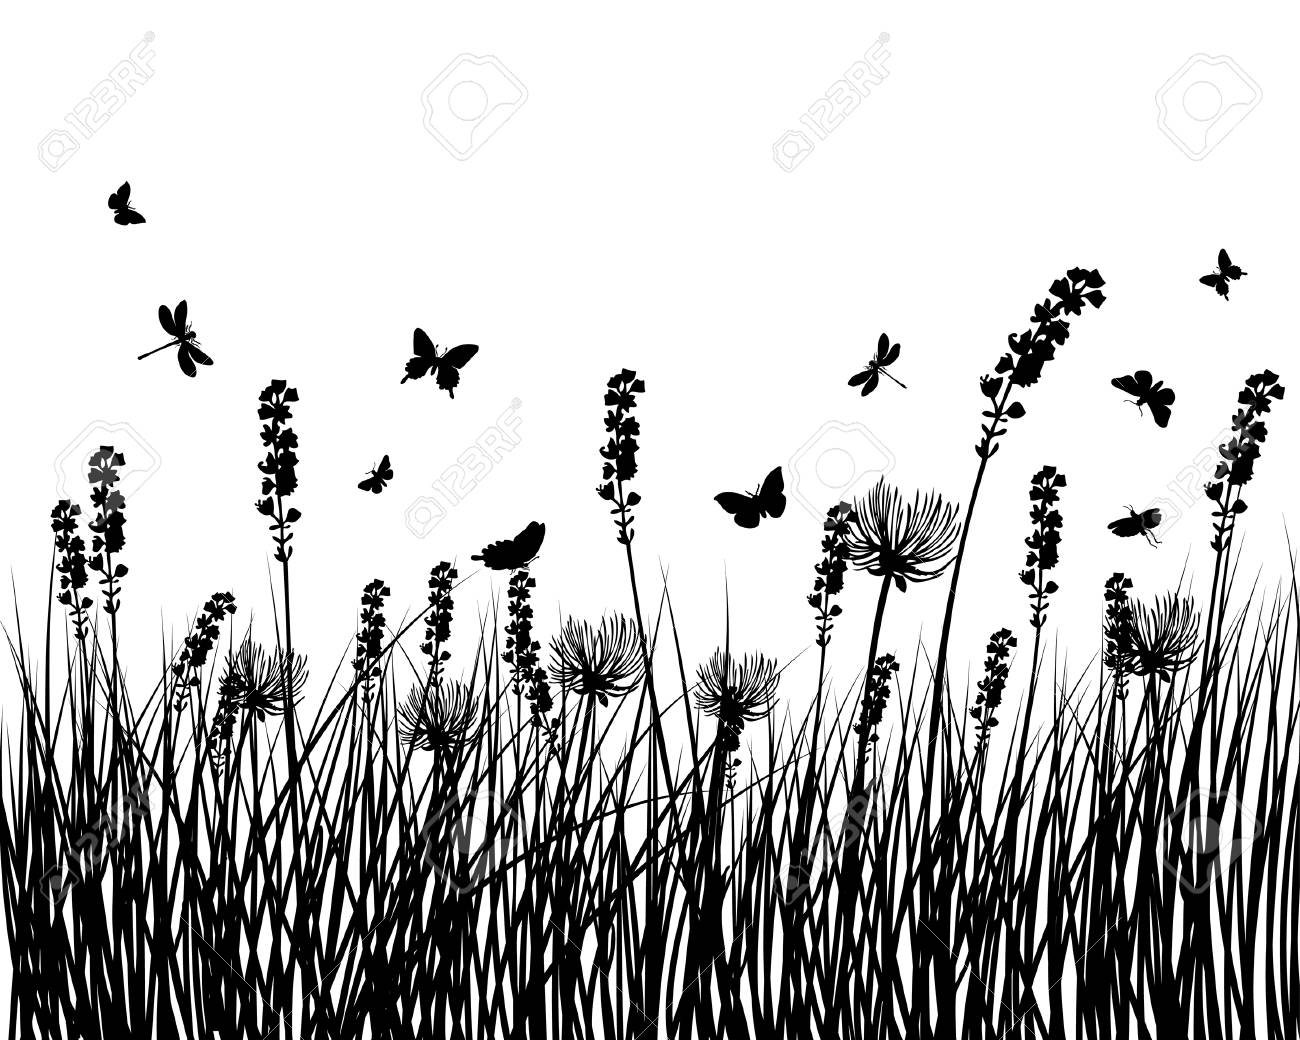 Vector grass silhouettes background for design use Stock Vector - 5233275